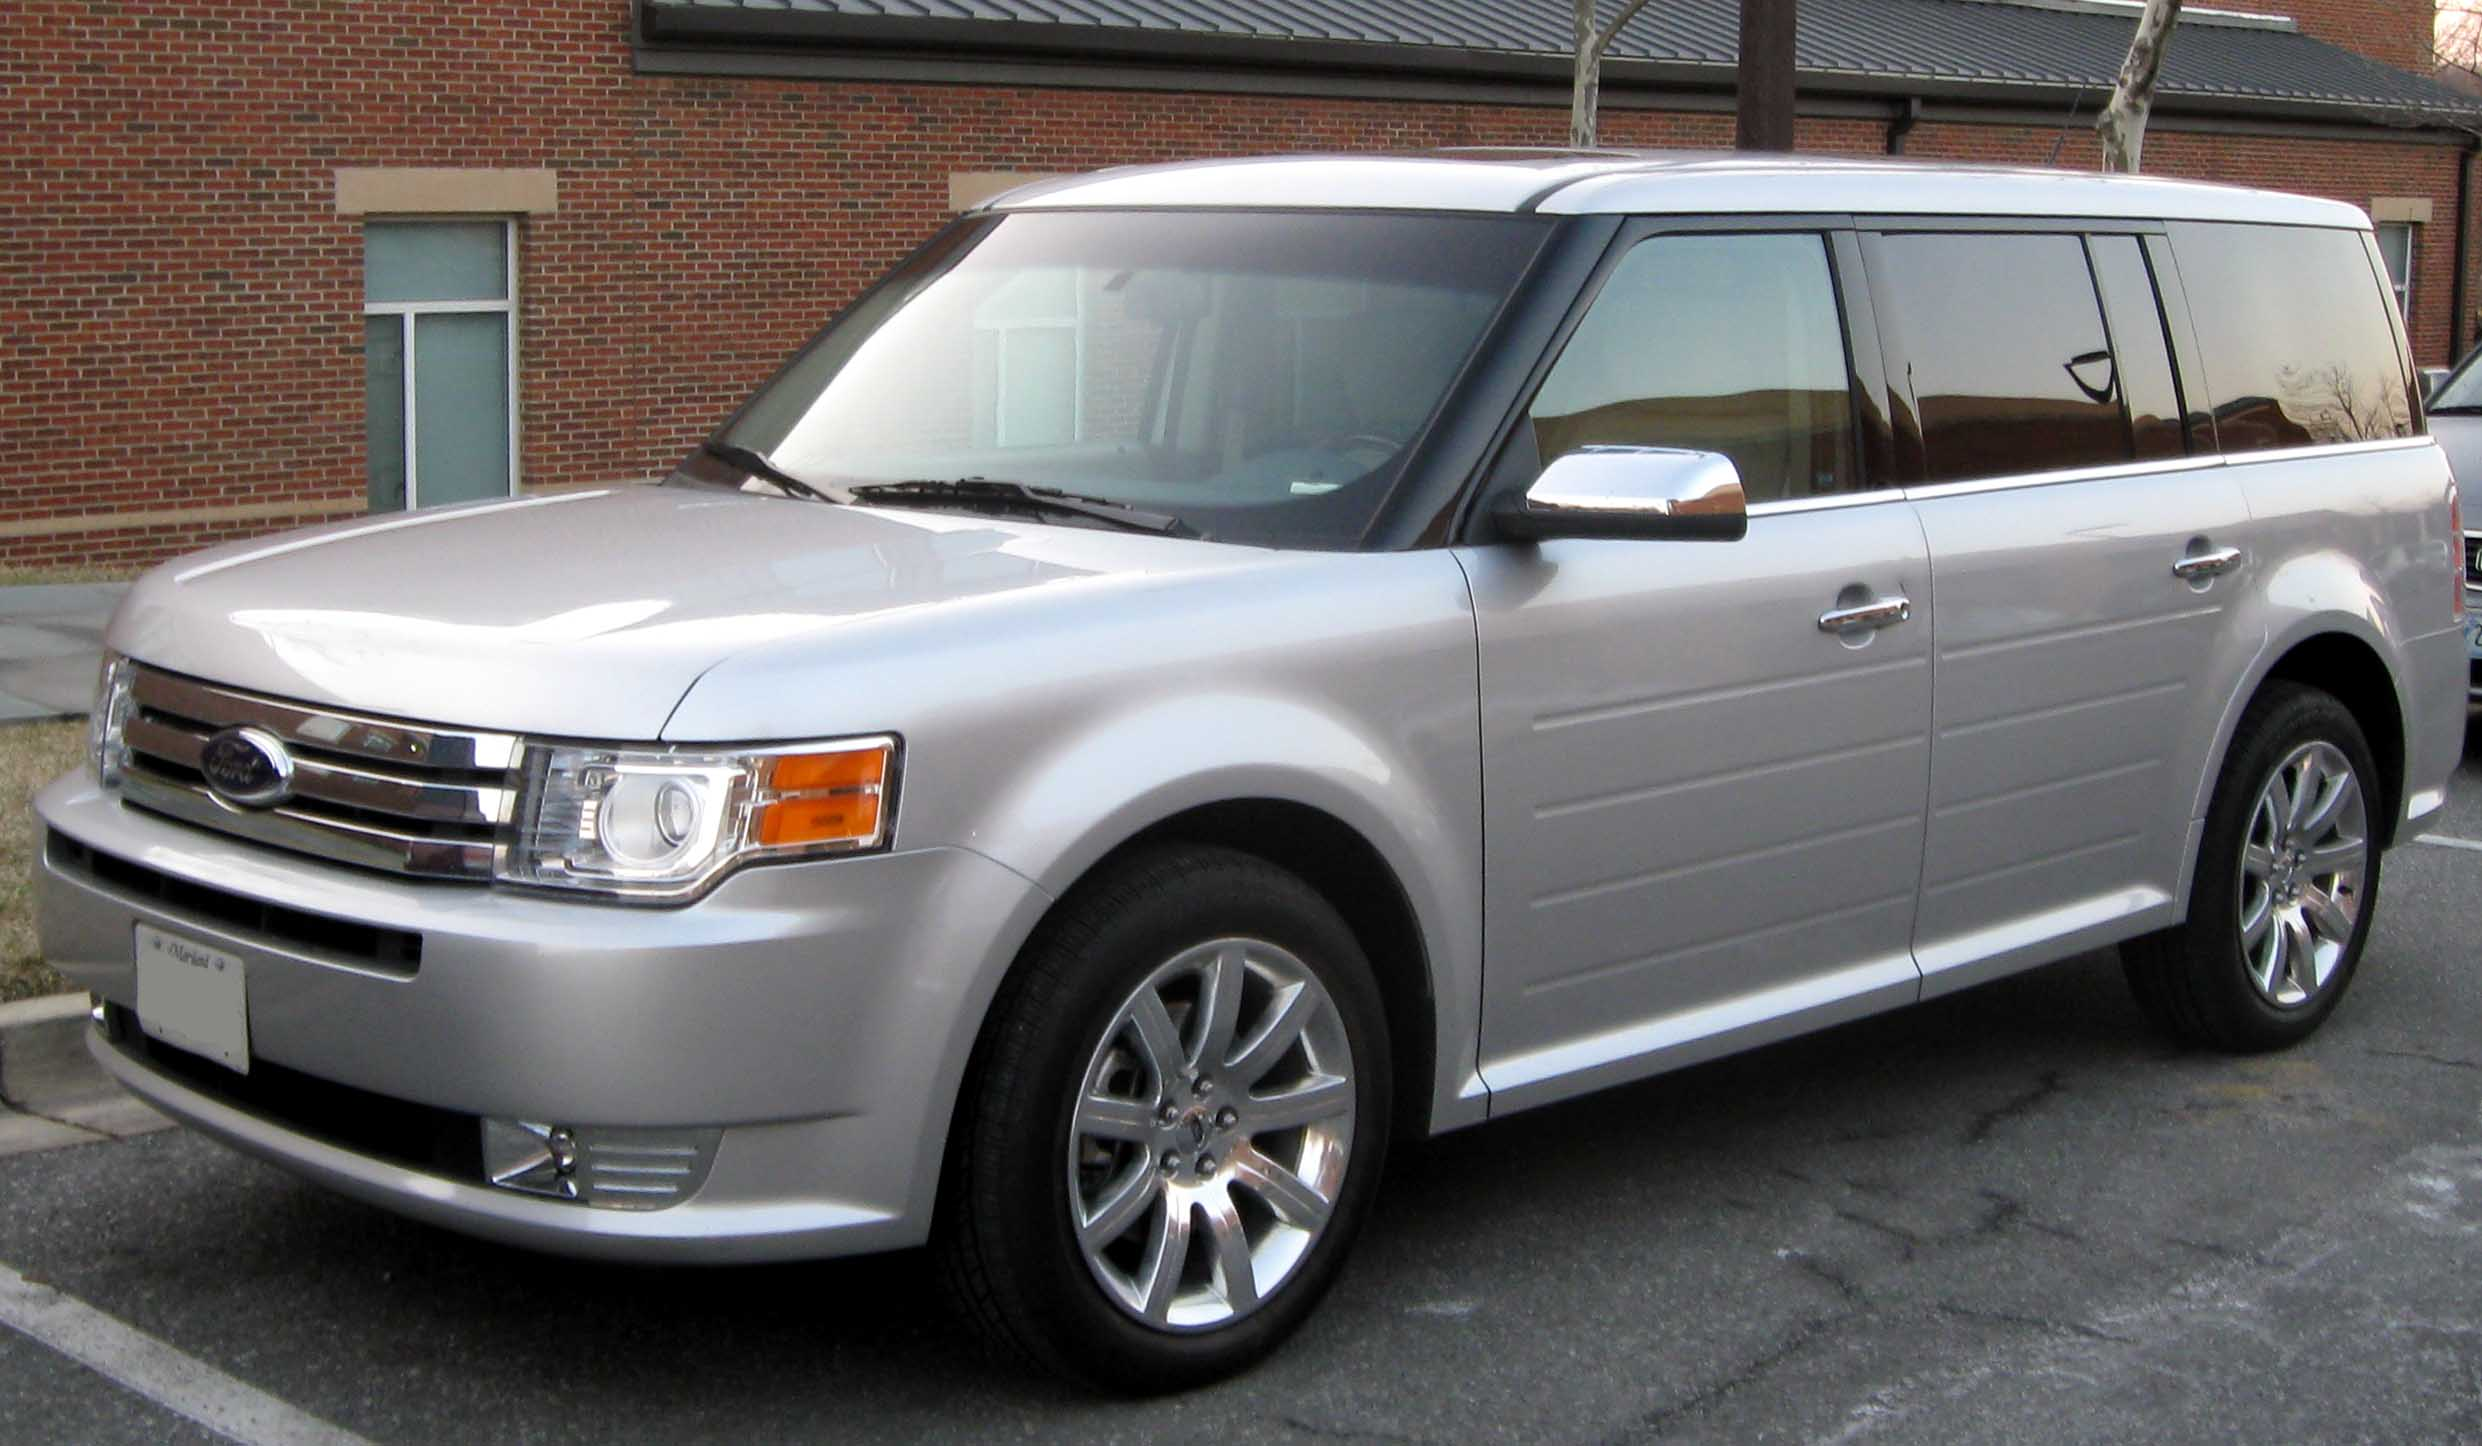 Ford flex 2009 photo - 2